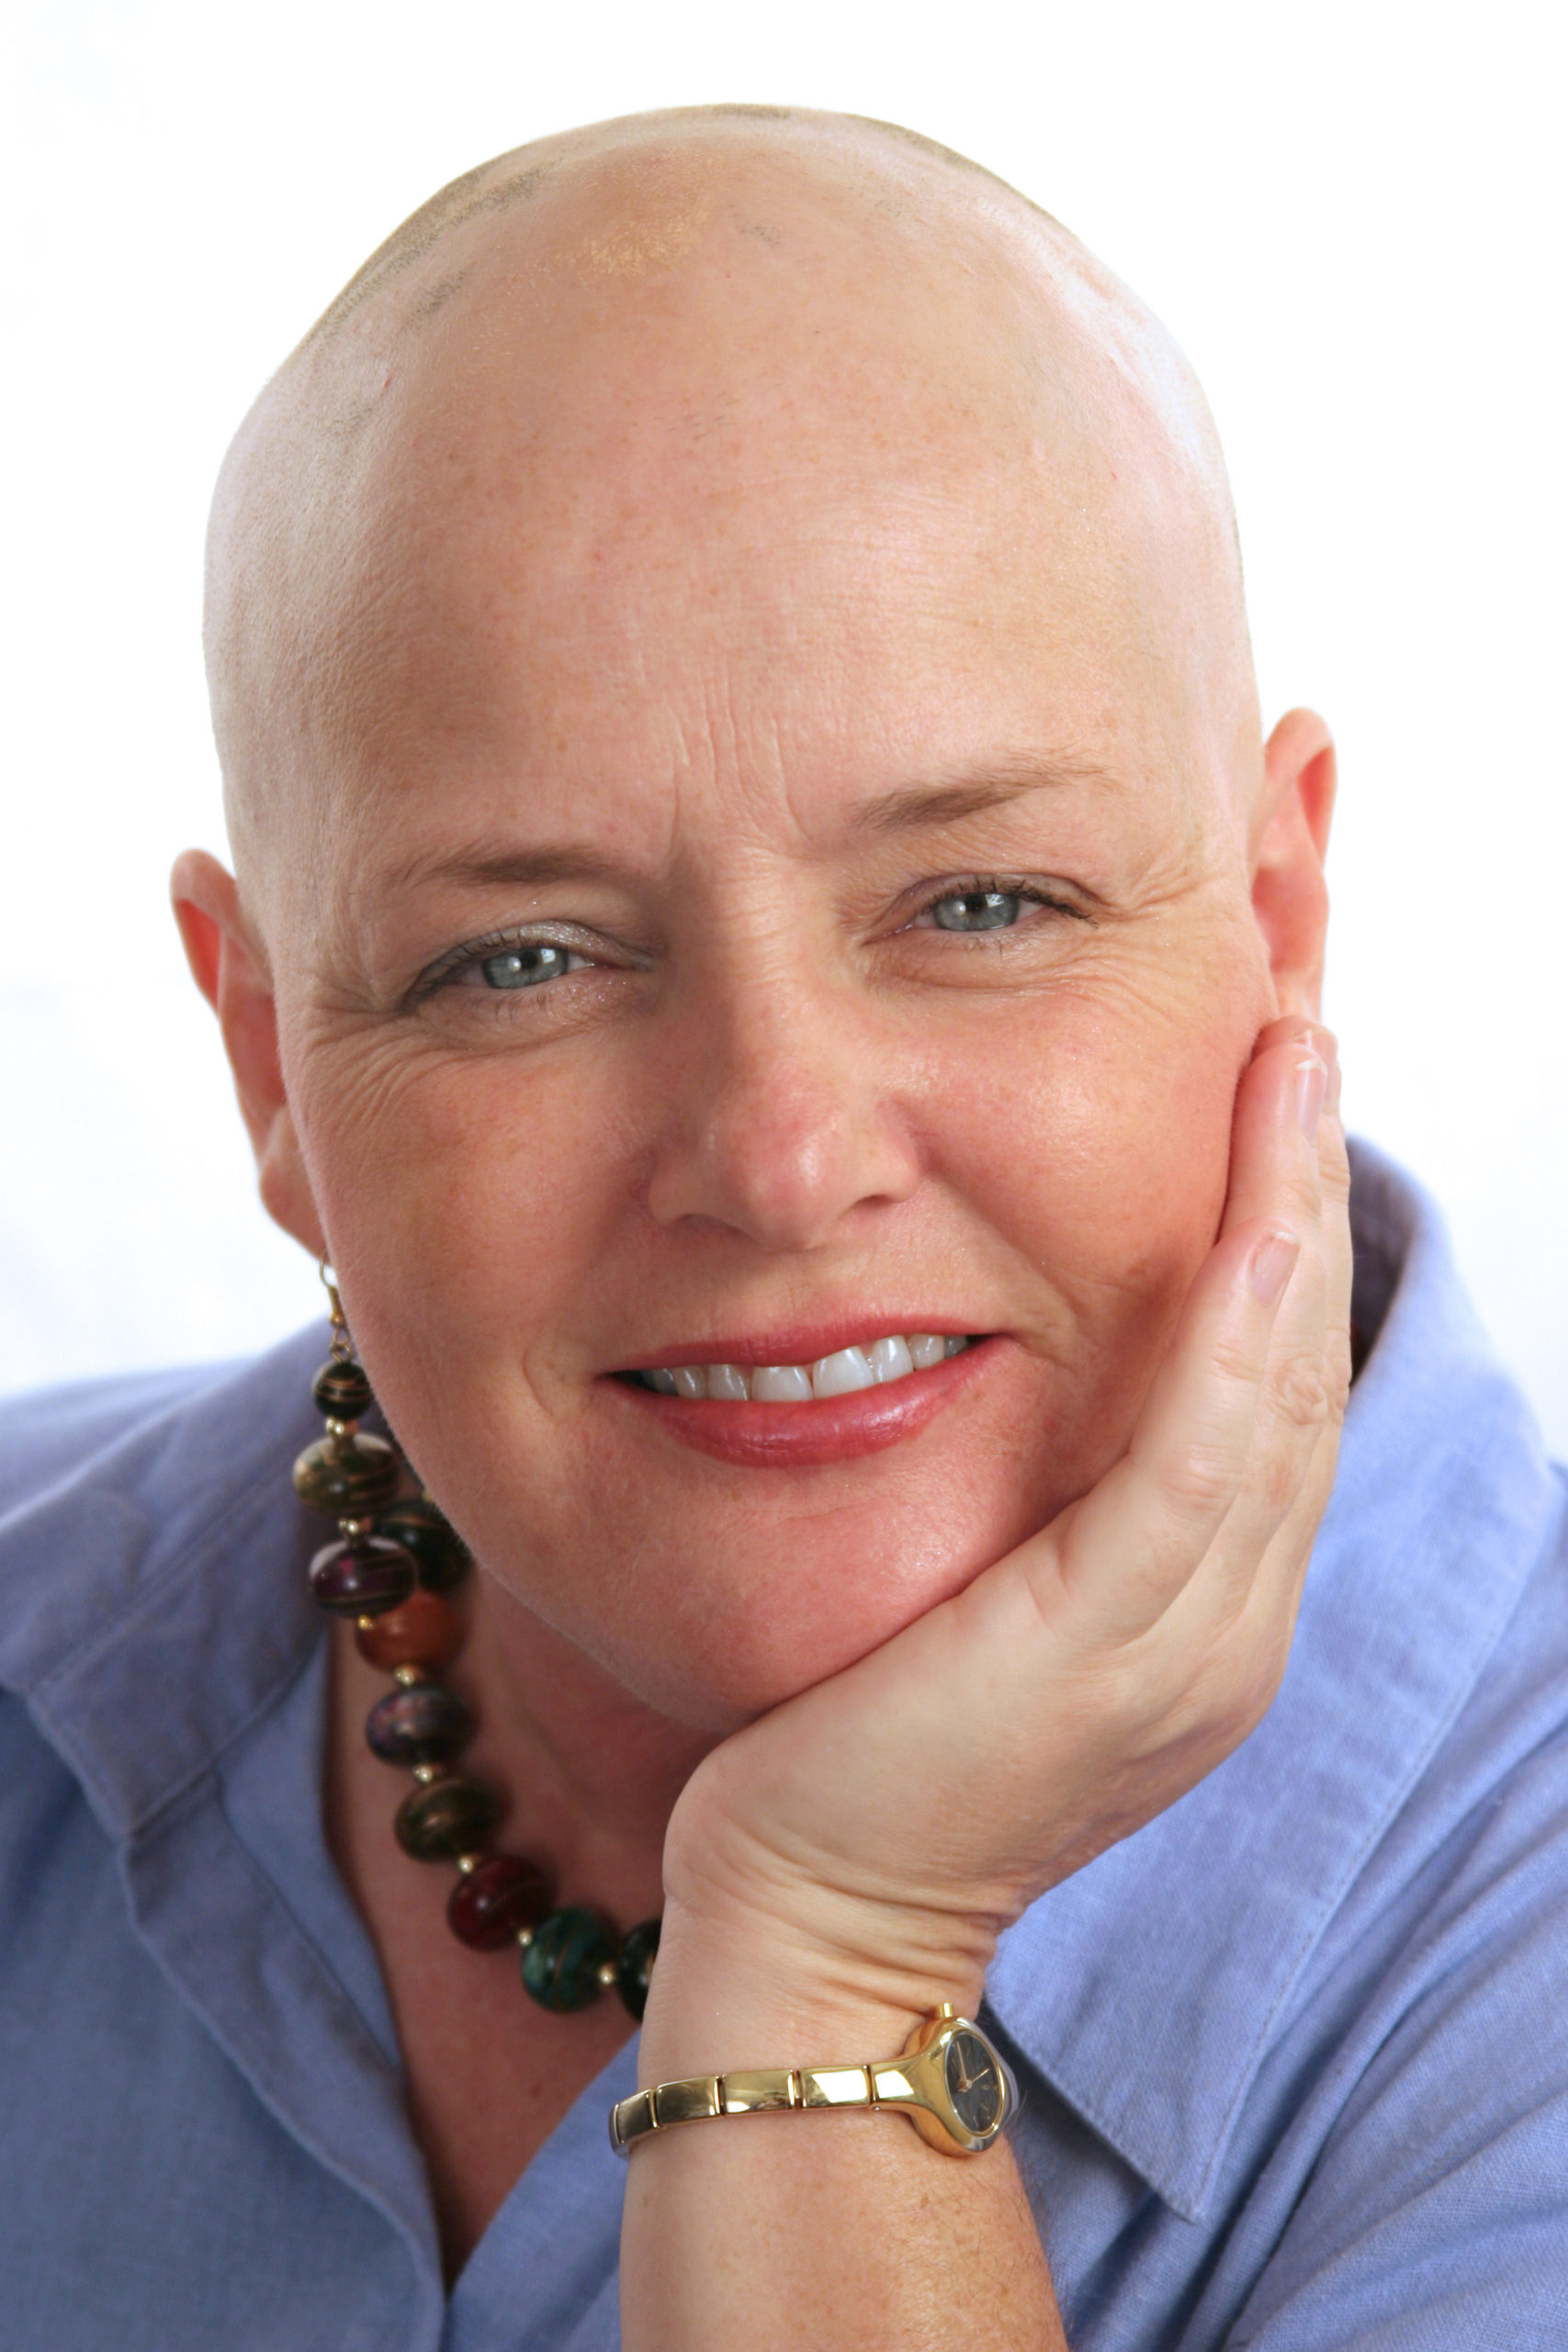 A portrait of a beautiful woman undergoing a health challenge with a positive attitude.